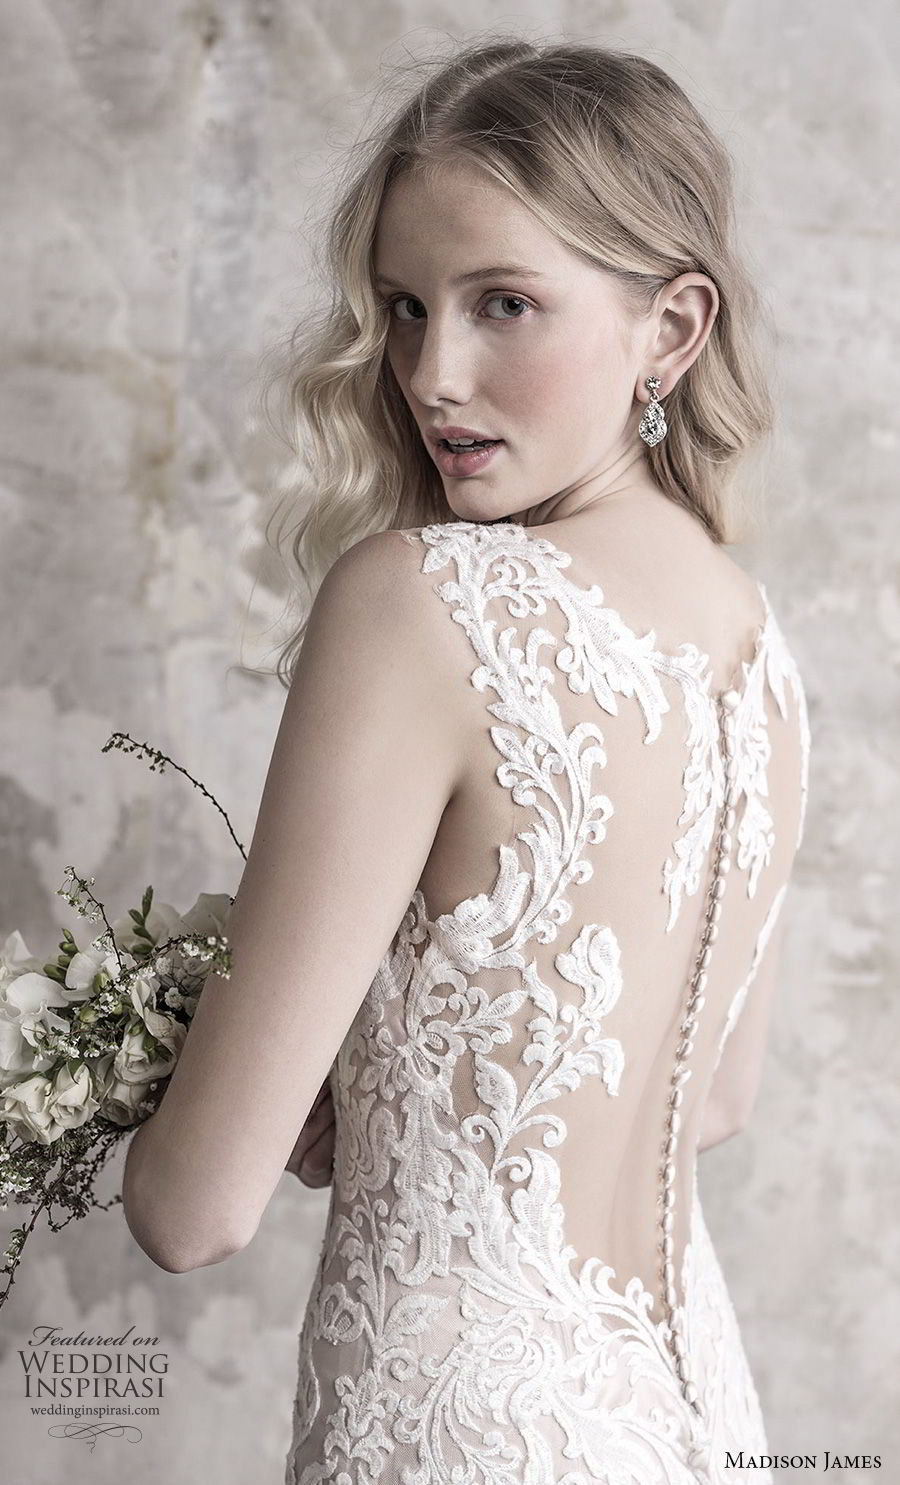 madison james fall 2018 bridal sleeveless with strap deep sweetheart neckline full embellishment elegant sheath wedding dress sheer button back long train (11) zbv